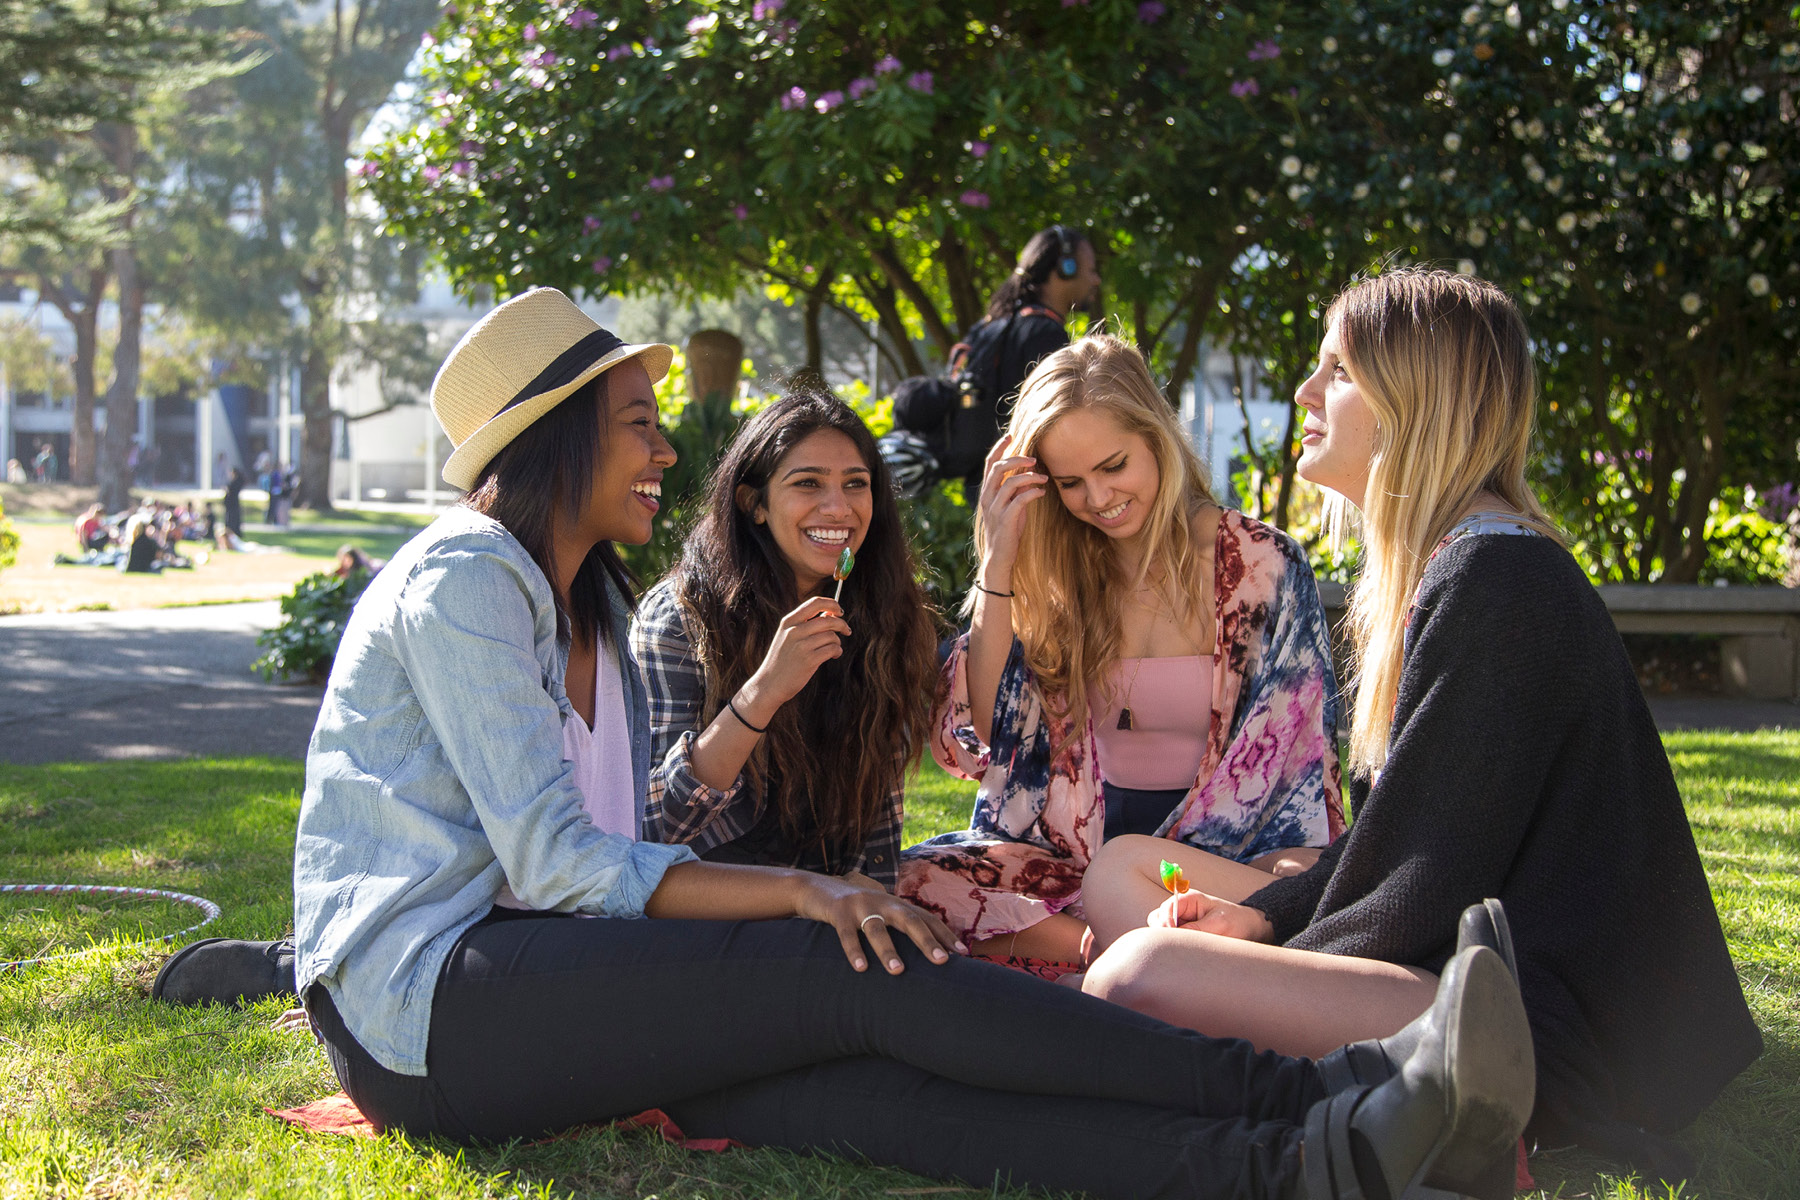 Four female students chatting on the grass